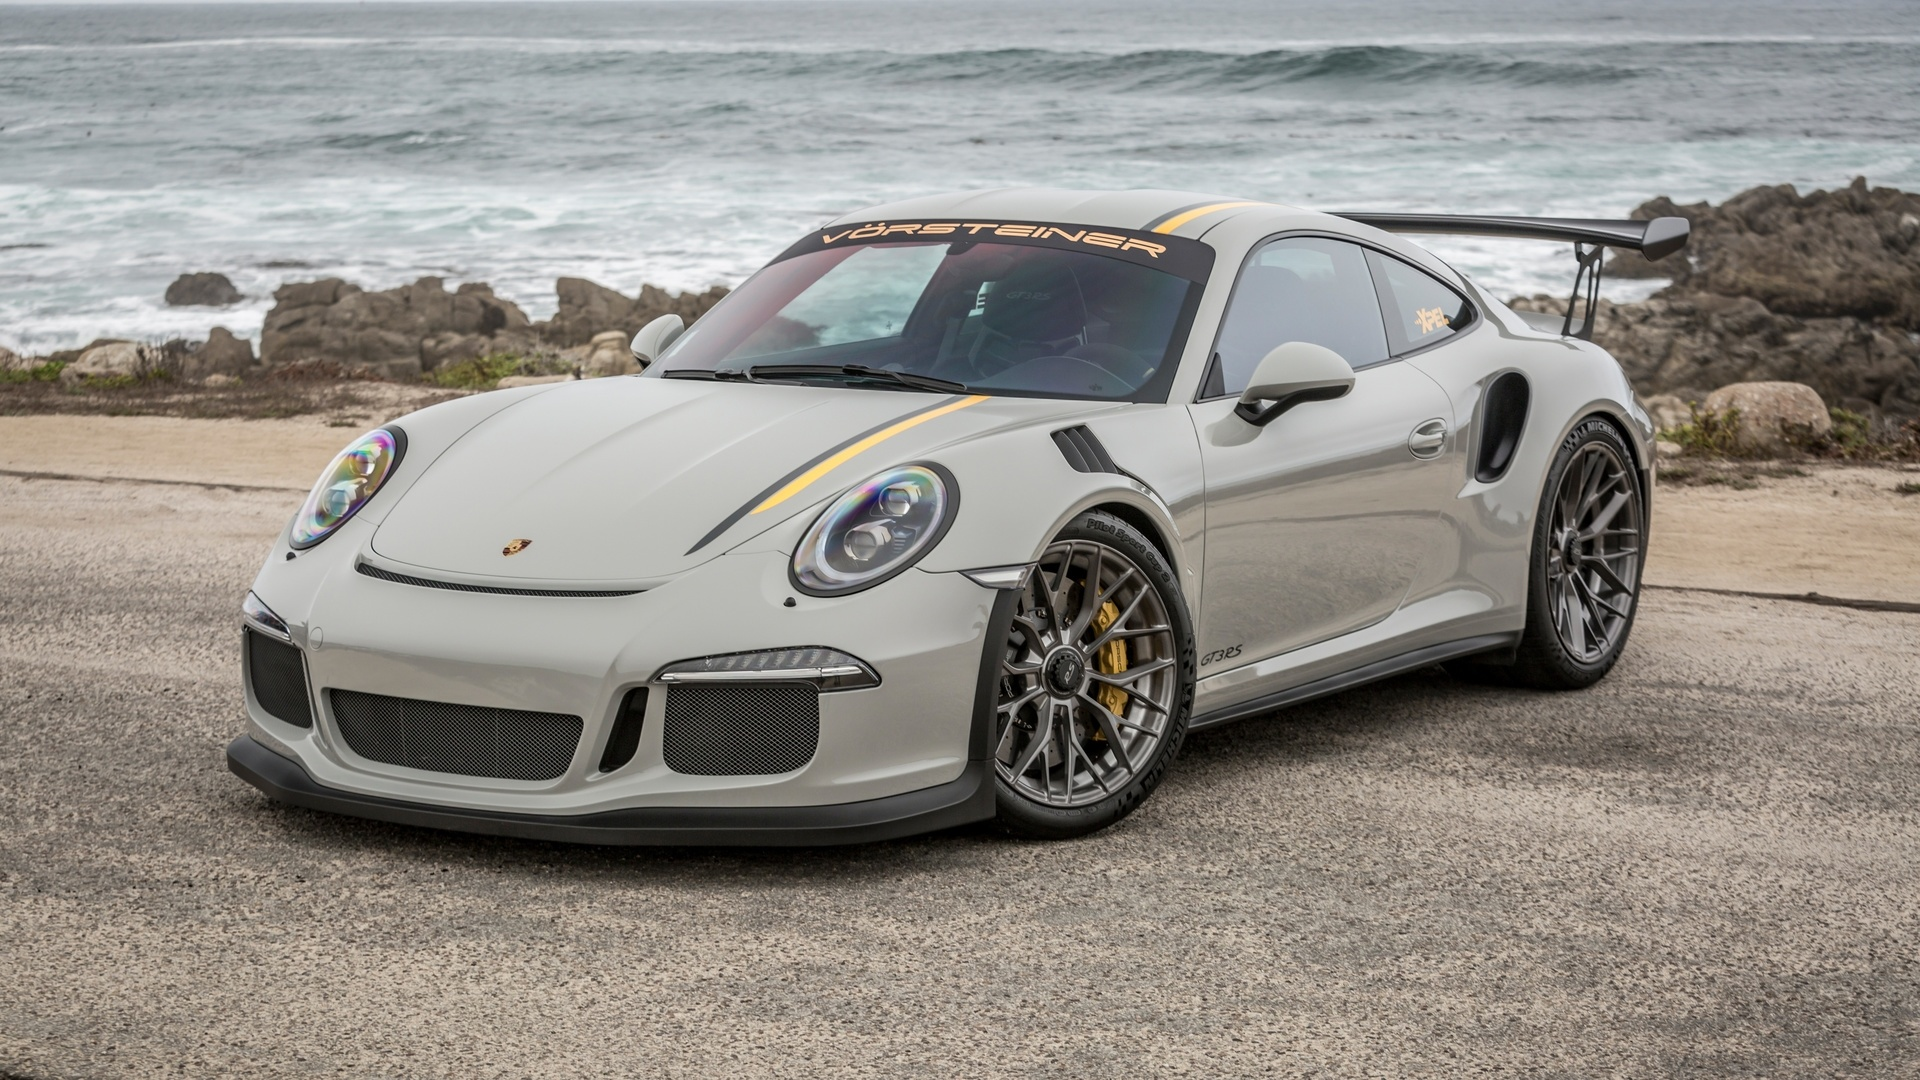 Porsche desktop wallpaper free download